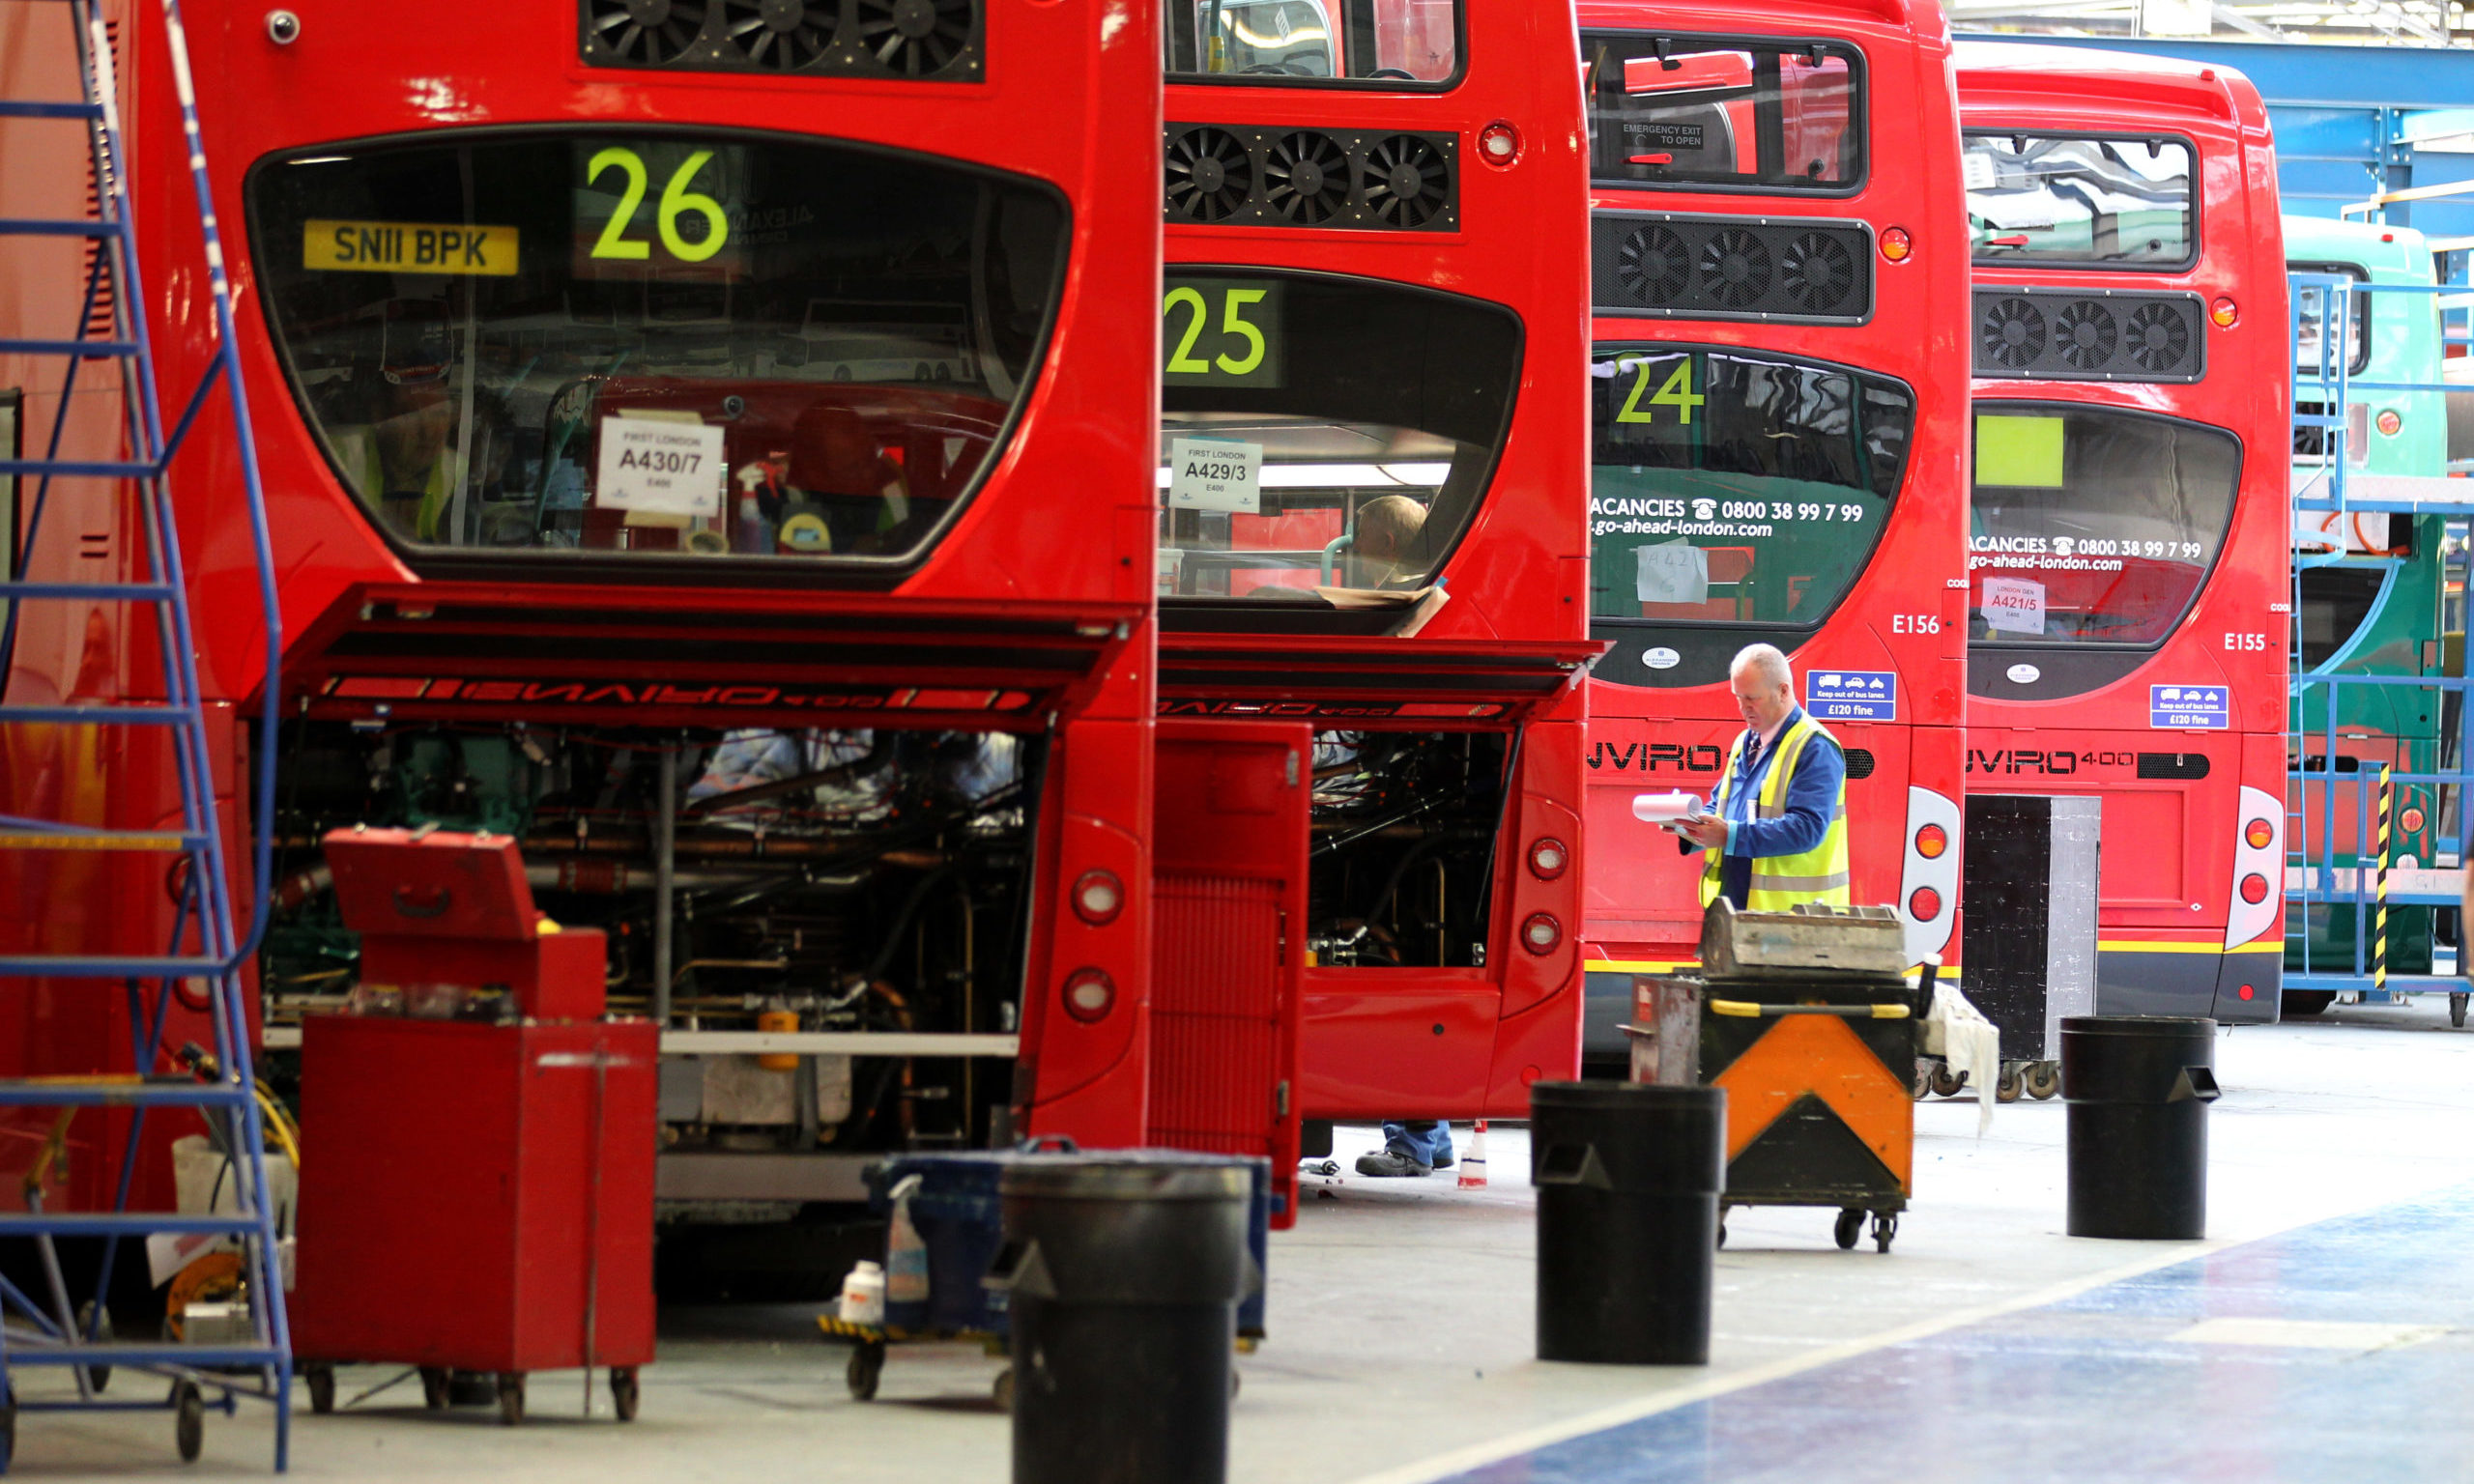 Pictured is the factory floor of  Alexander Dennis bus builders  in Falkirk         PRESS  ASSOCIATION Photo. Picture date,   Thursday 7th  April    2011  Photo credit should read:   PA/ Andrew Milligan